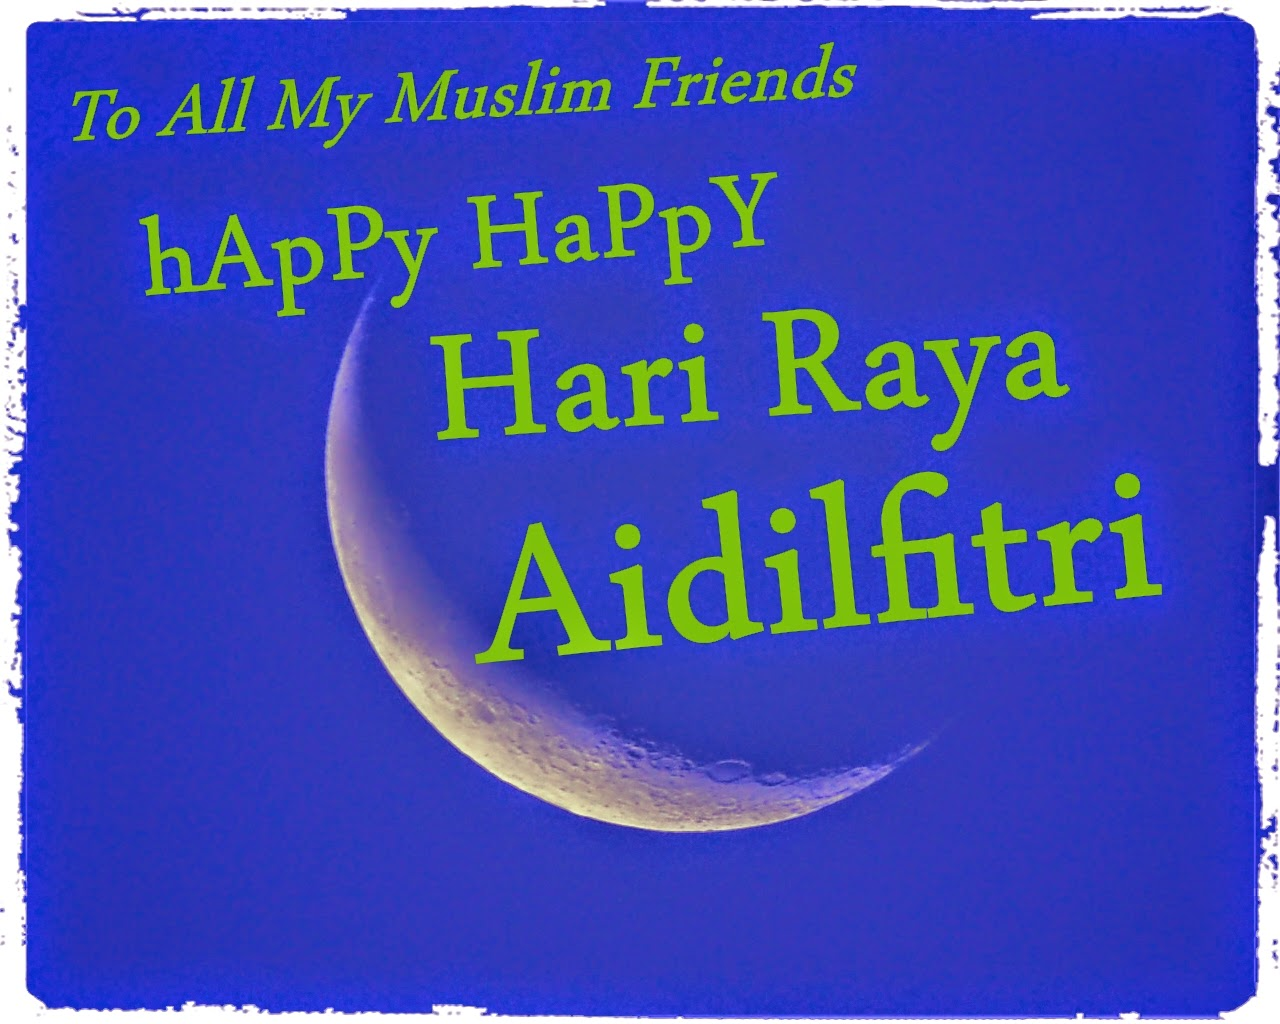 essay hari raya celebrated all muslims Eid ul-fitr celebration in malaysia essay short  wished all muslims selamat hari raya haji and added that an  it can be celebrated after 29.